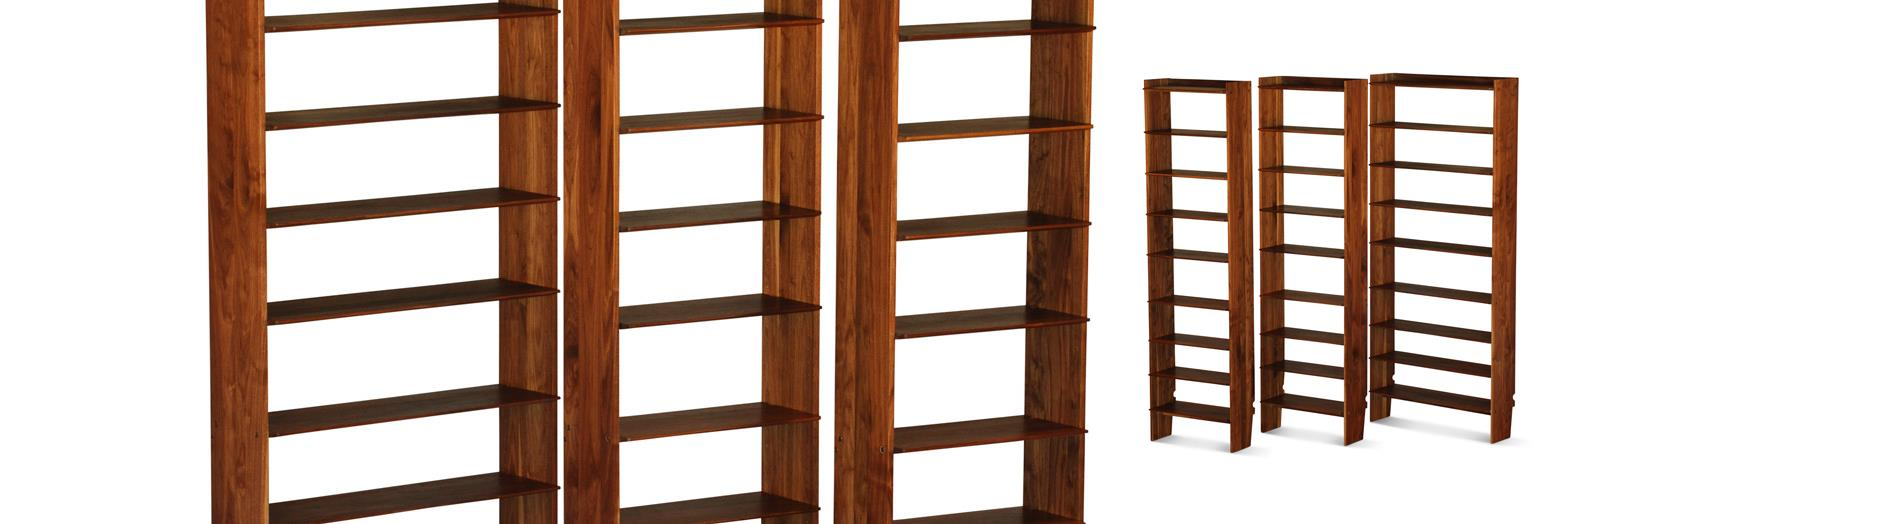 Scott-Jordan-bookcases